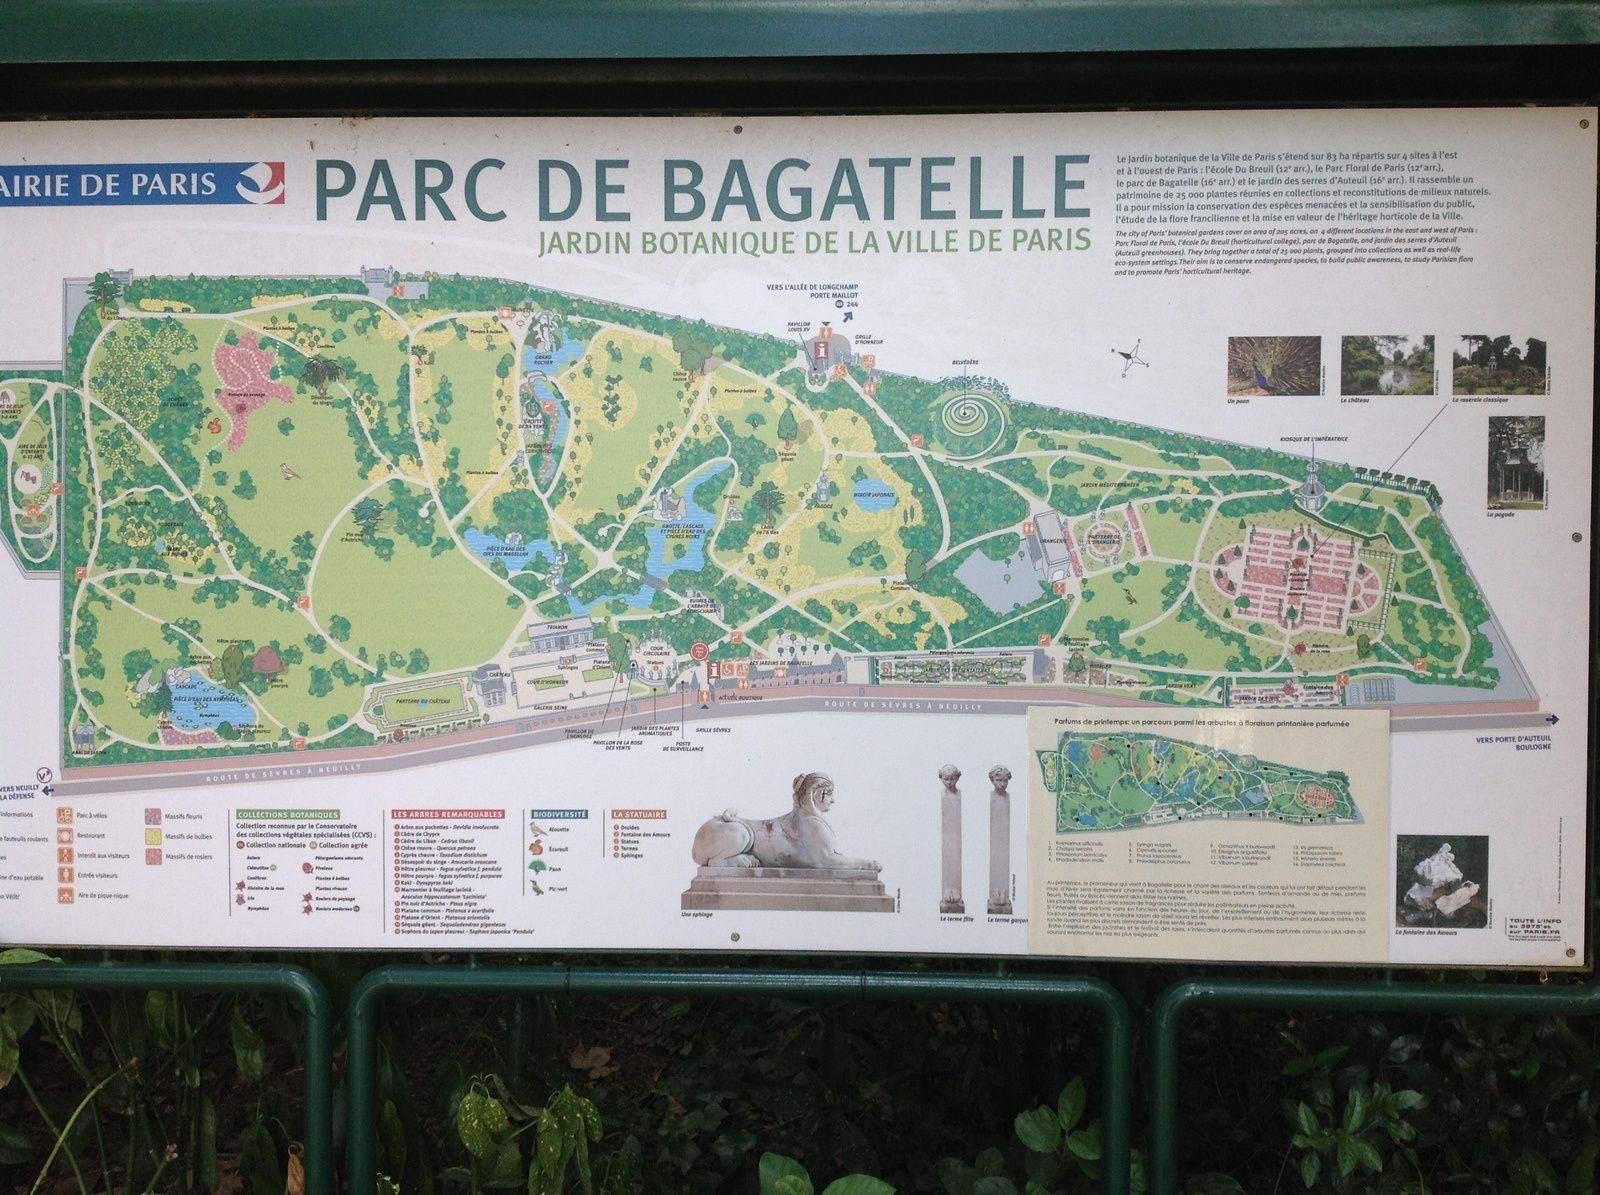 Parc de Bagatelle - Paris